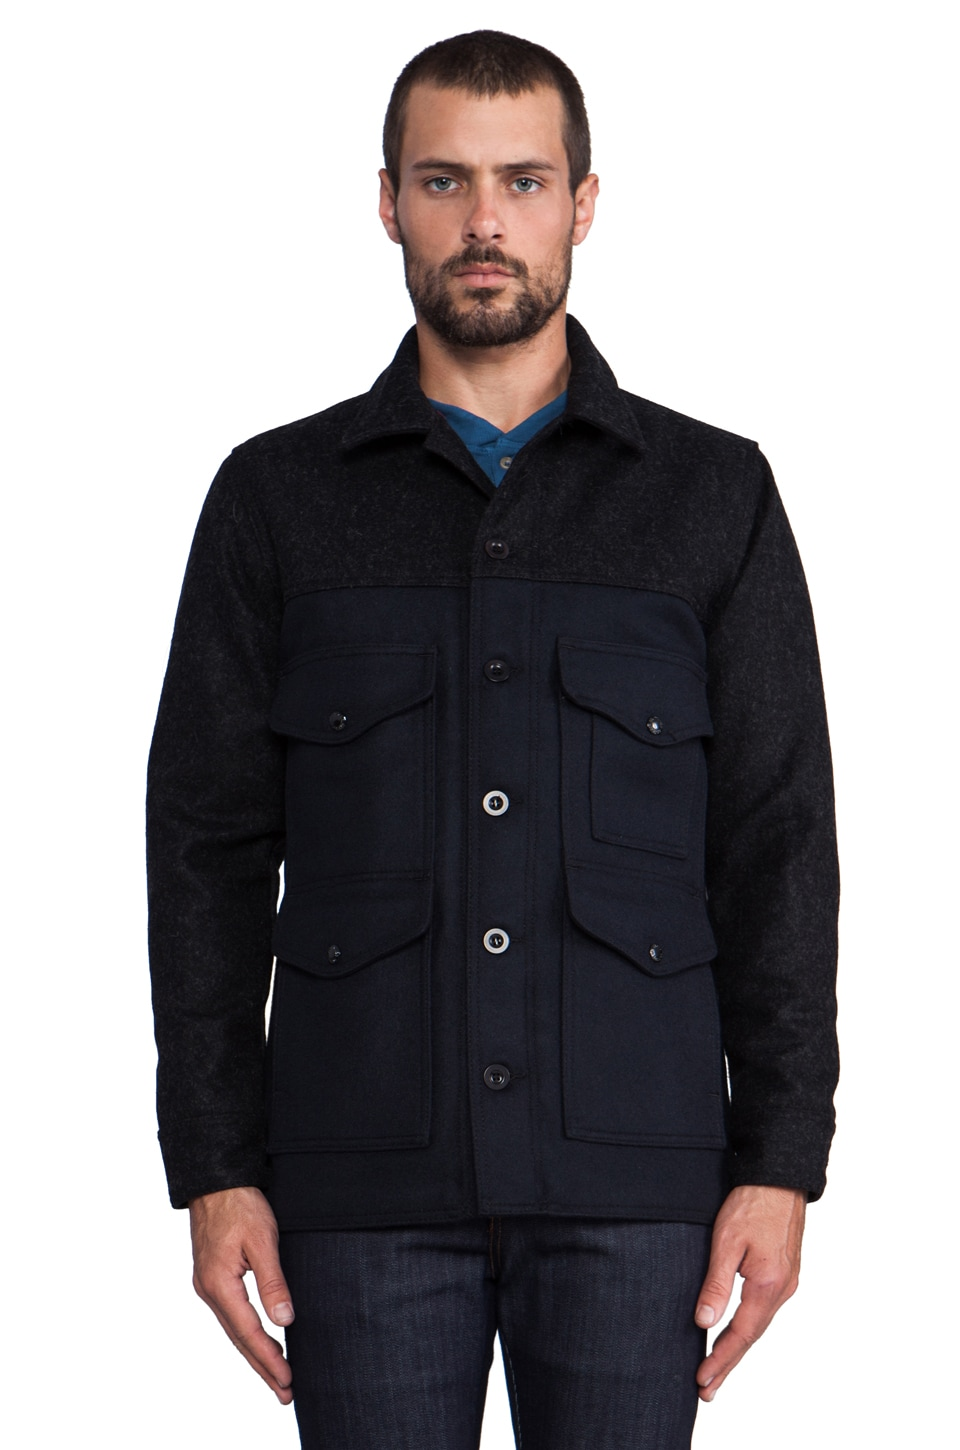 Filson Lined Guide Fit Cruiser in Charcoal/Navy